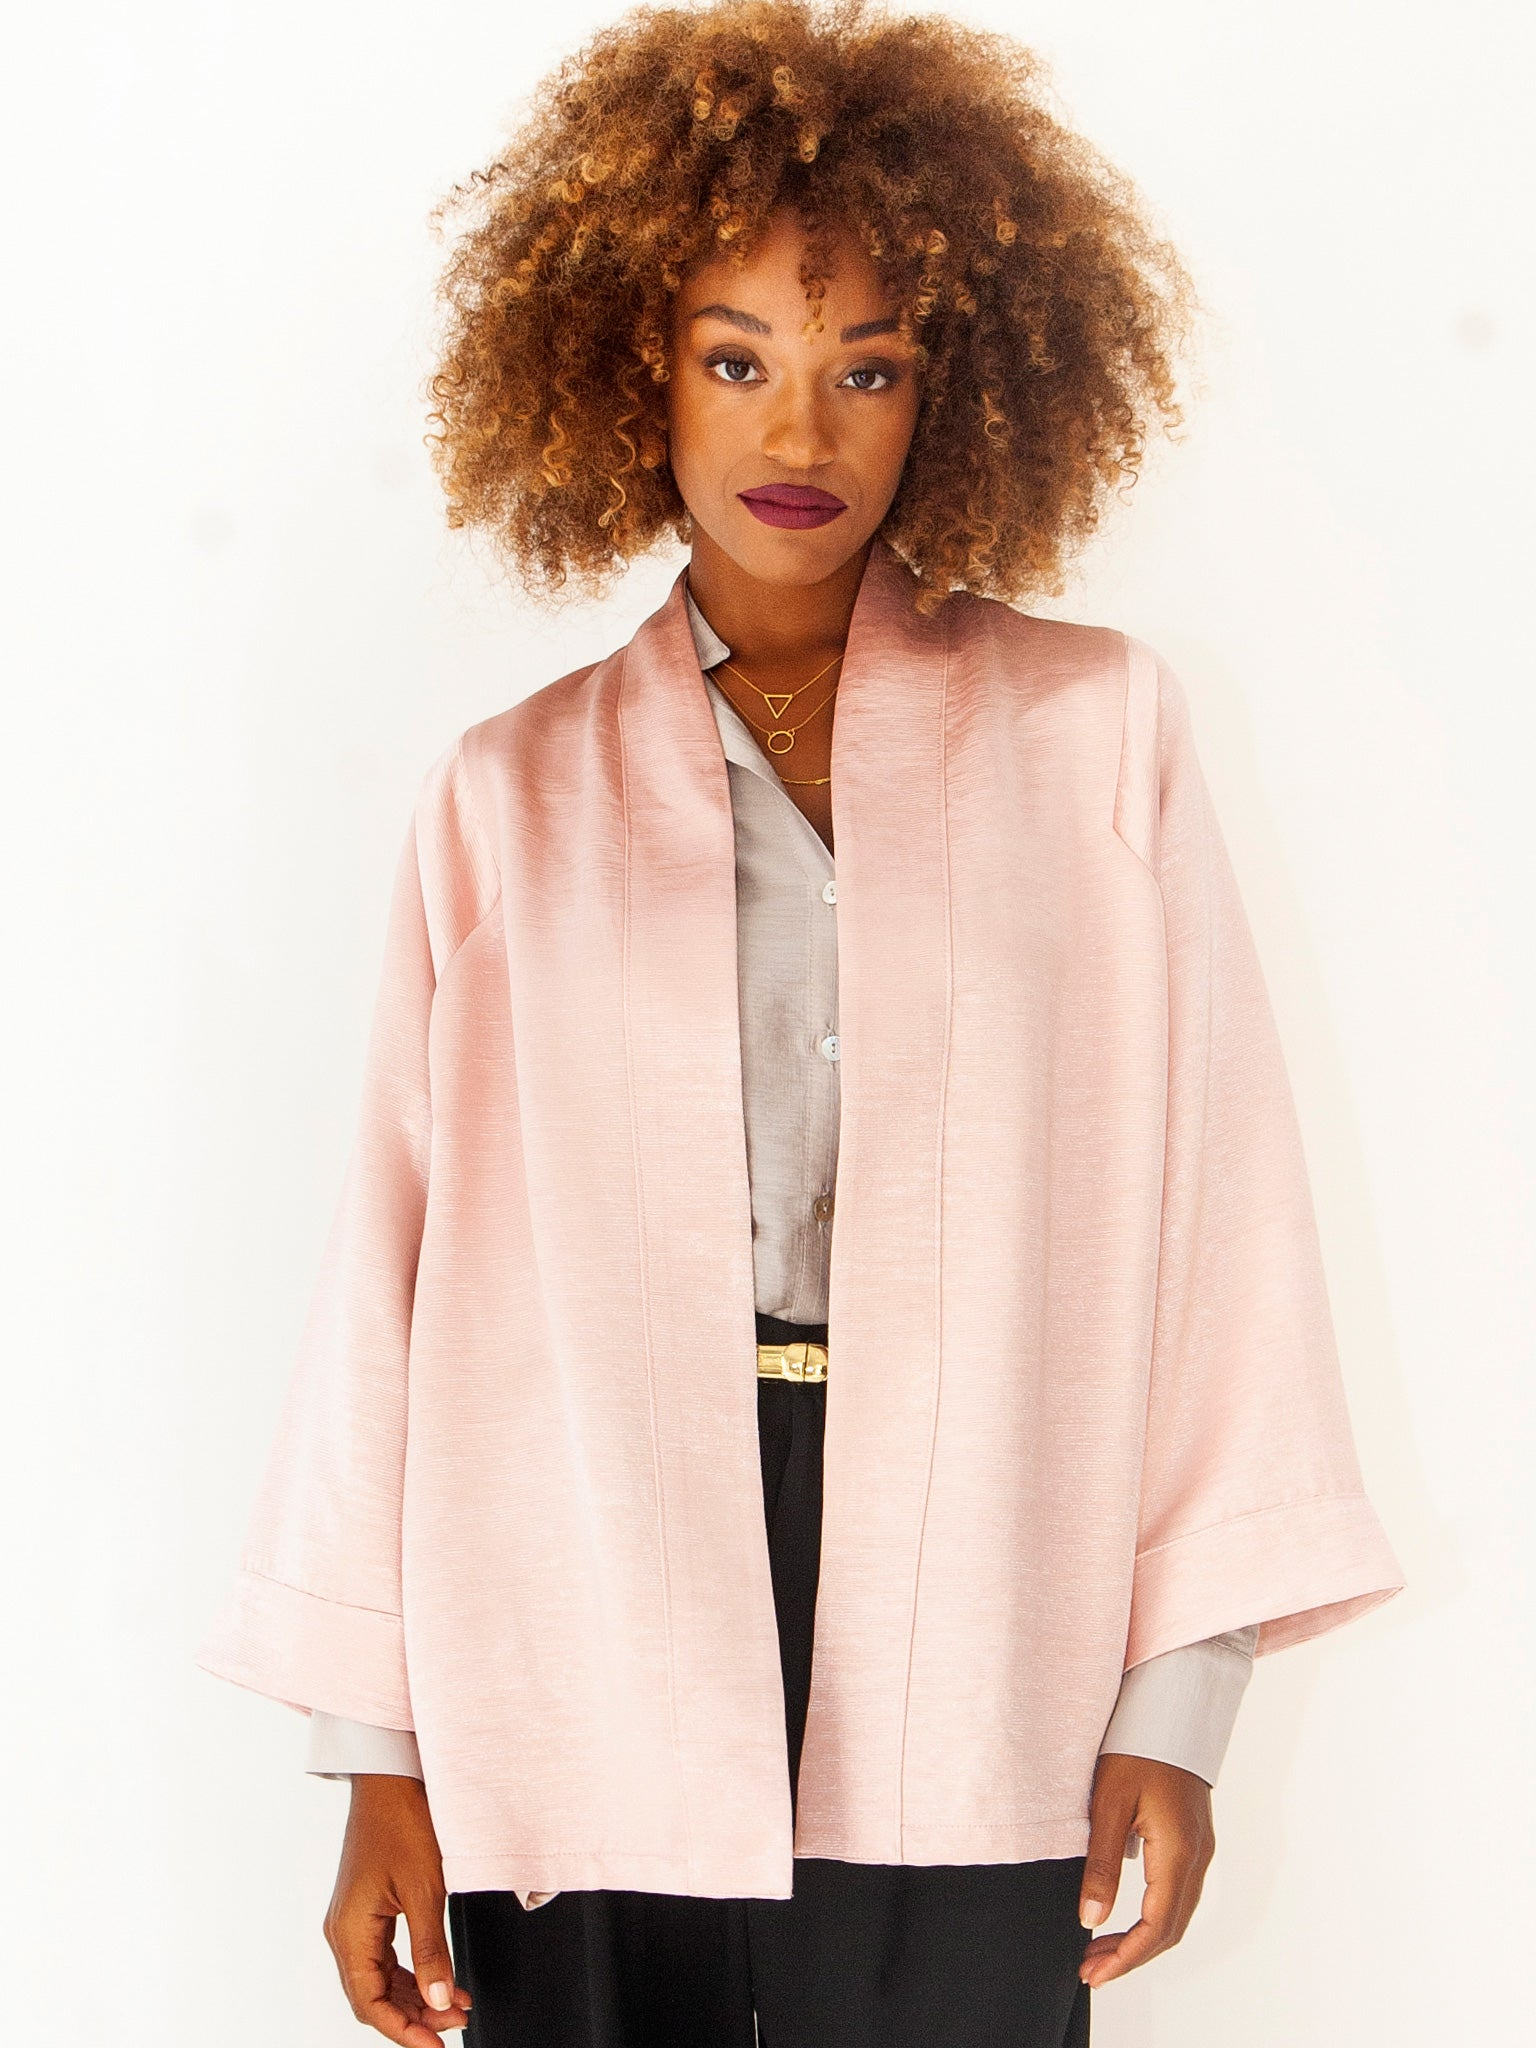 Frost PInk Shimmering Kimono Jacket